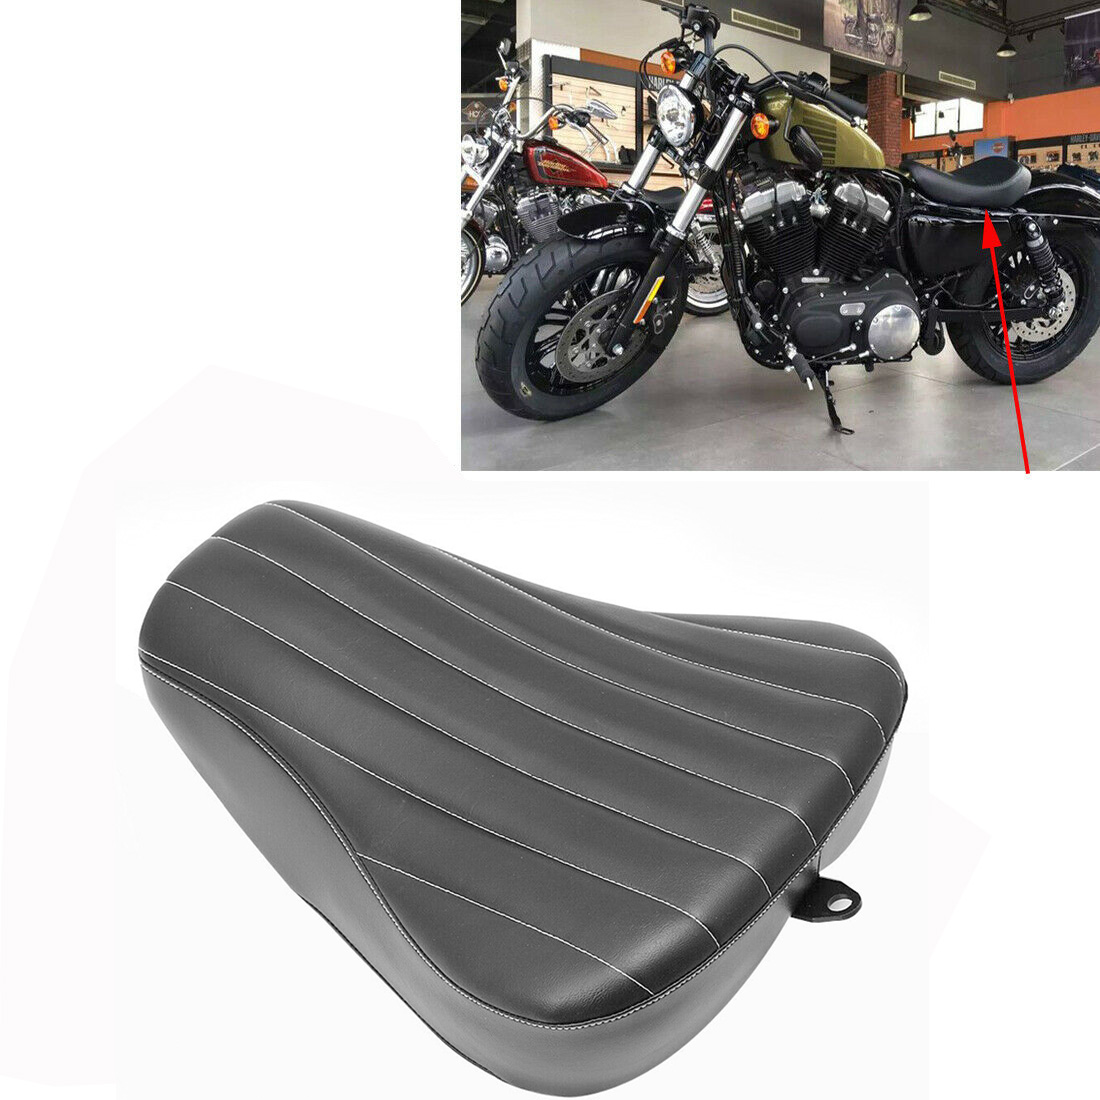 Motorcycle Saddle Front Solo Rider Seat Driver Seat Motorcycle Single Driver Seat